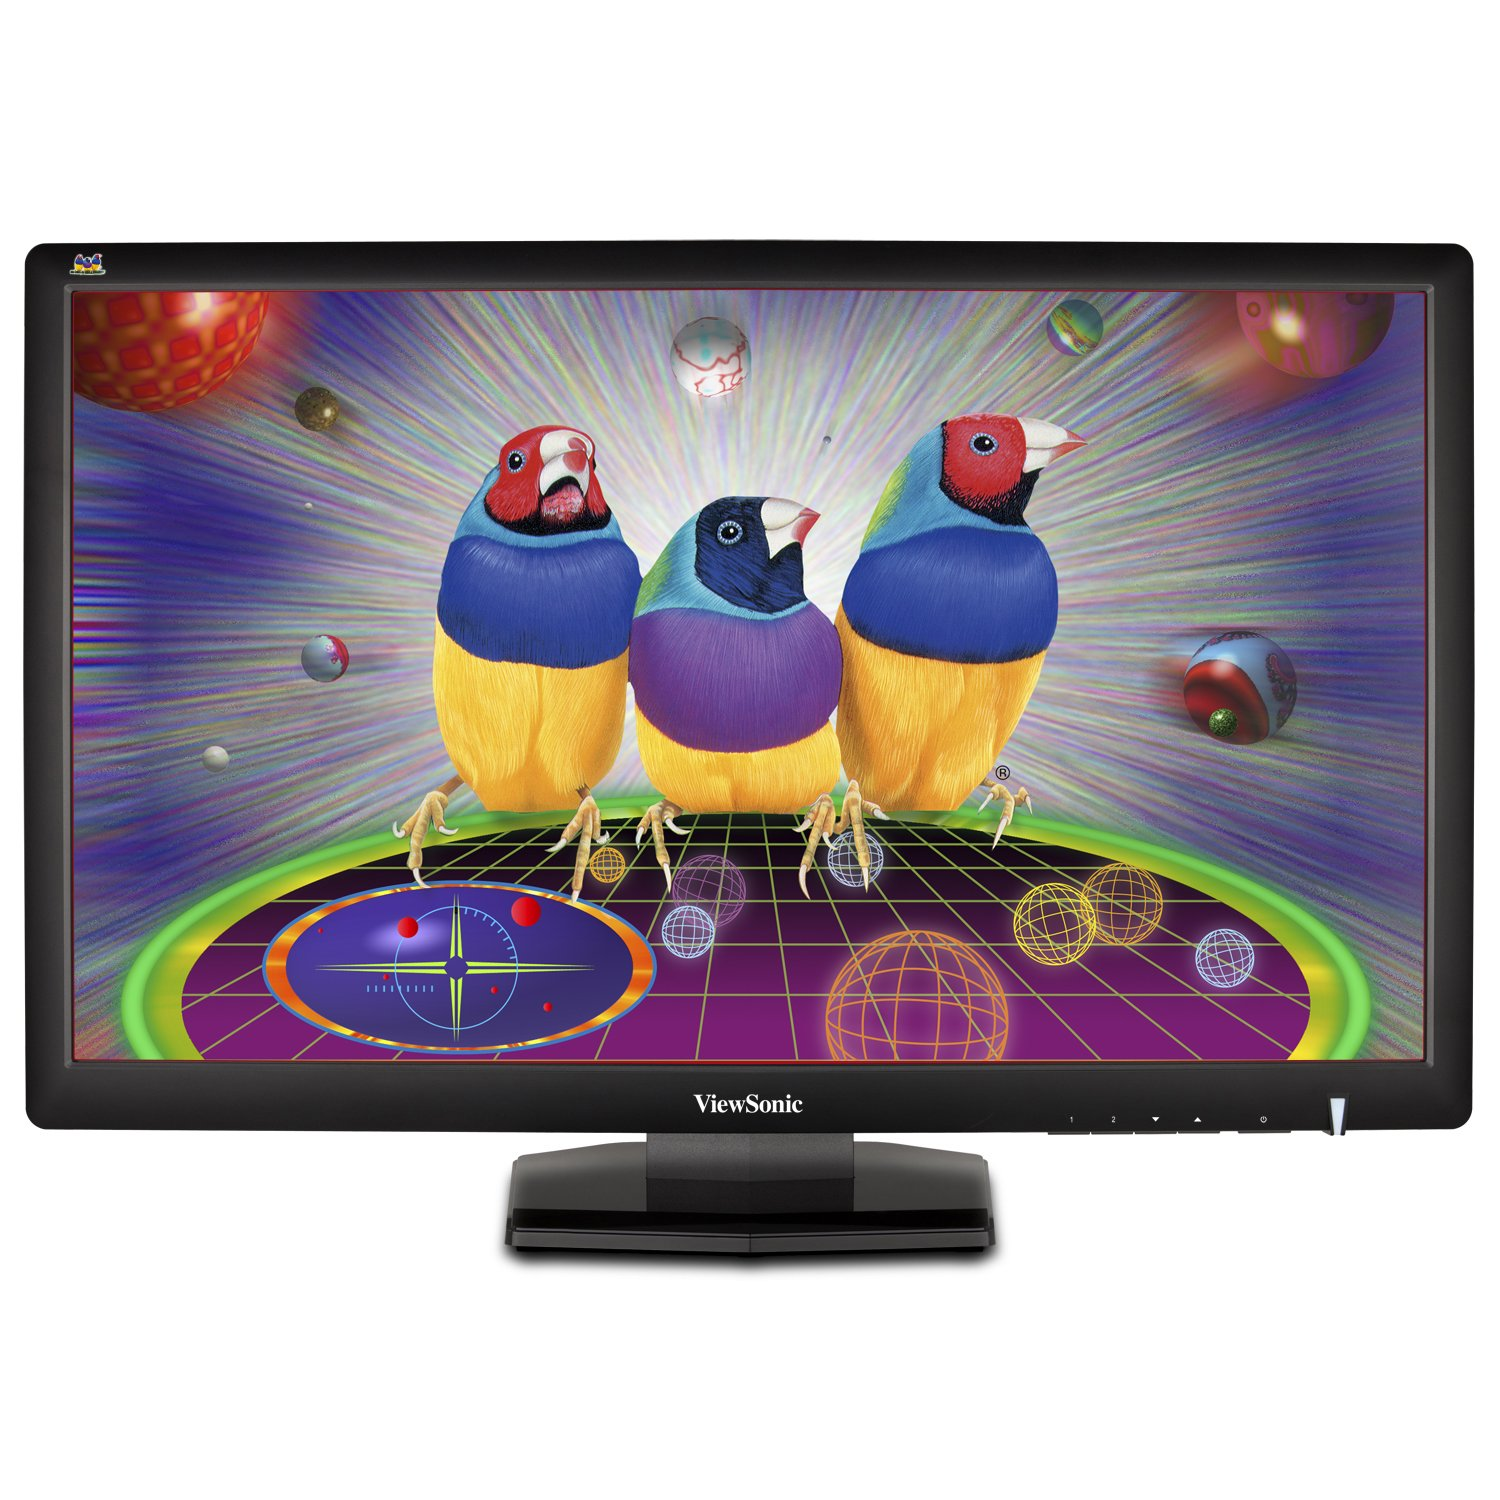 ViewSonic VX2703MH-LED 27-Inch LED-Lit LCD Monitor, Full HD 1080p, 3ms, HDMI/DVI/VGA, Speakers, VESA